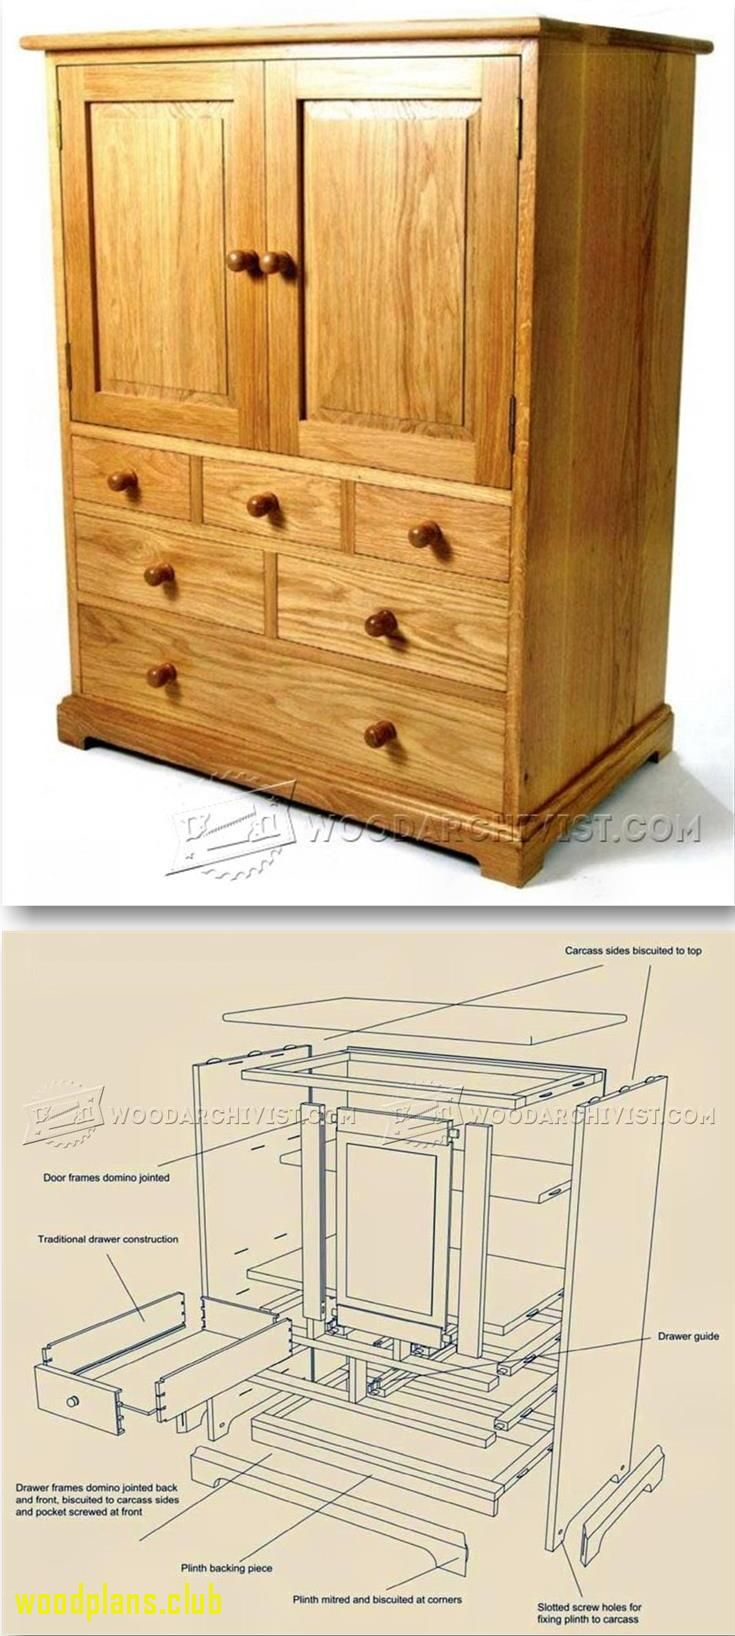 Oak woodworking projects cool apartment furniture